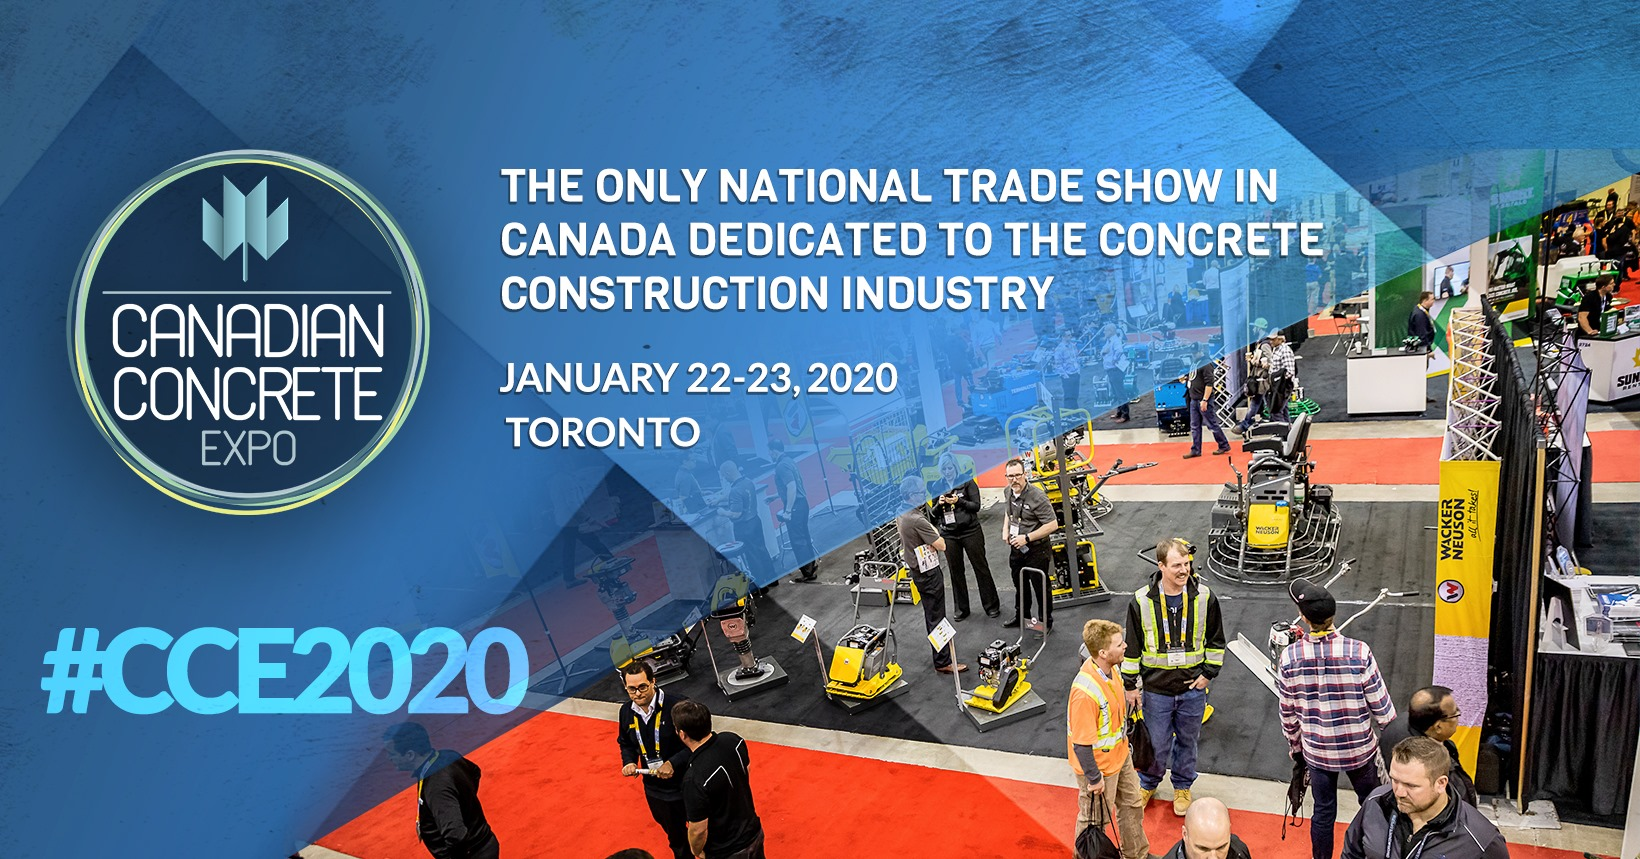 Canadian Concrete Expo 2020